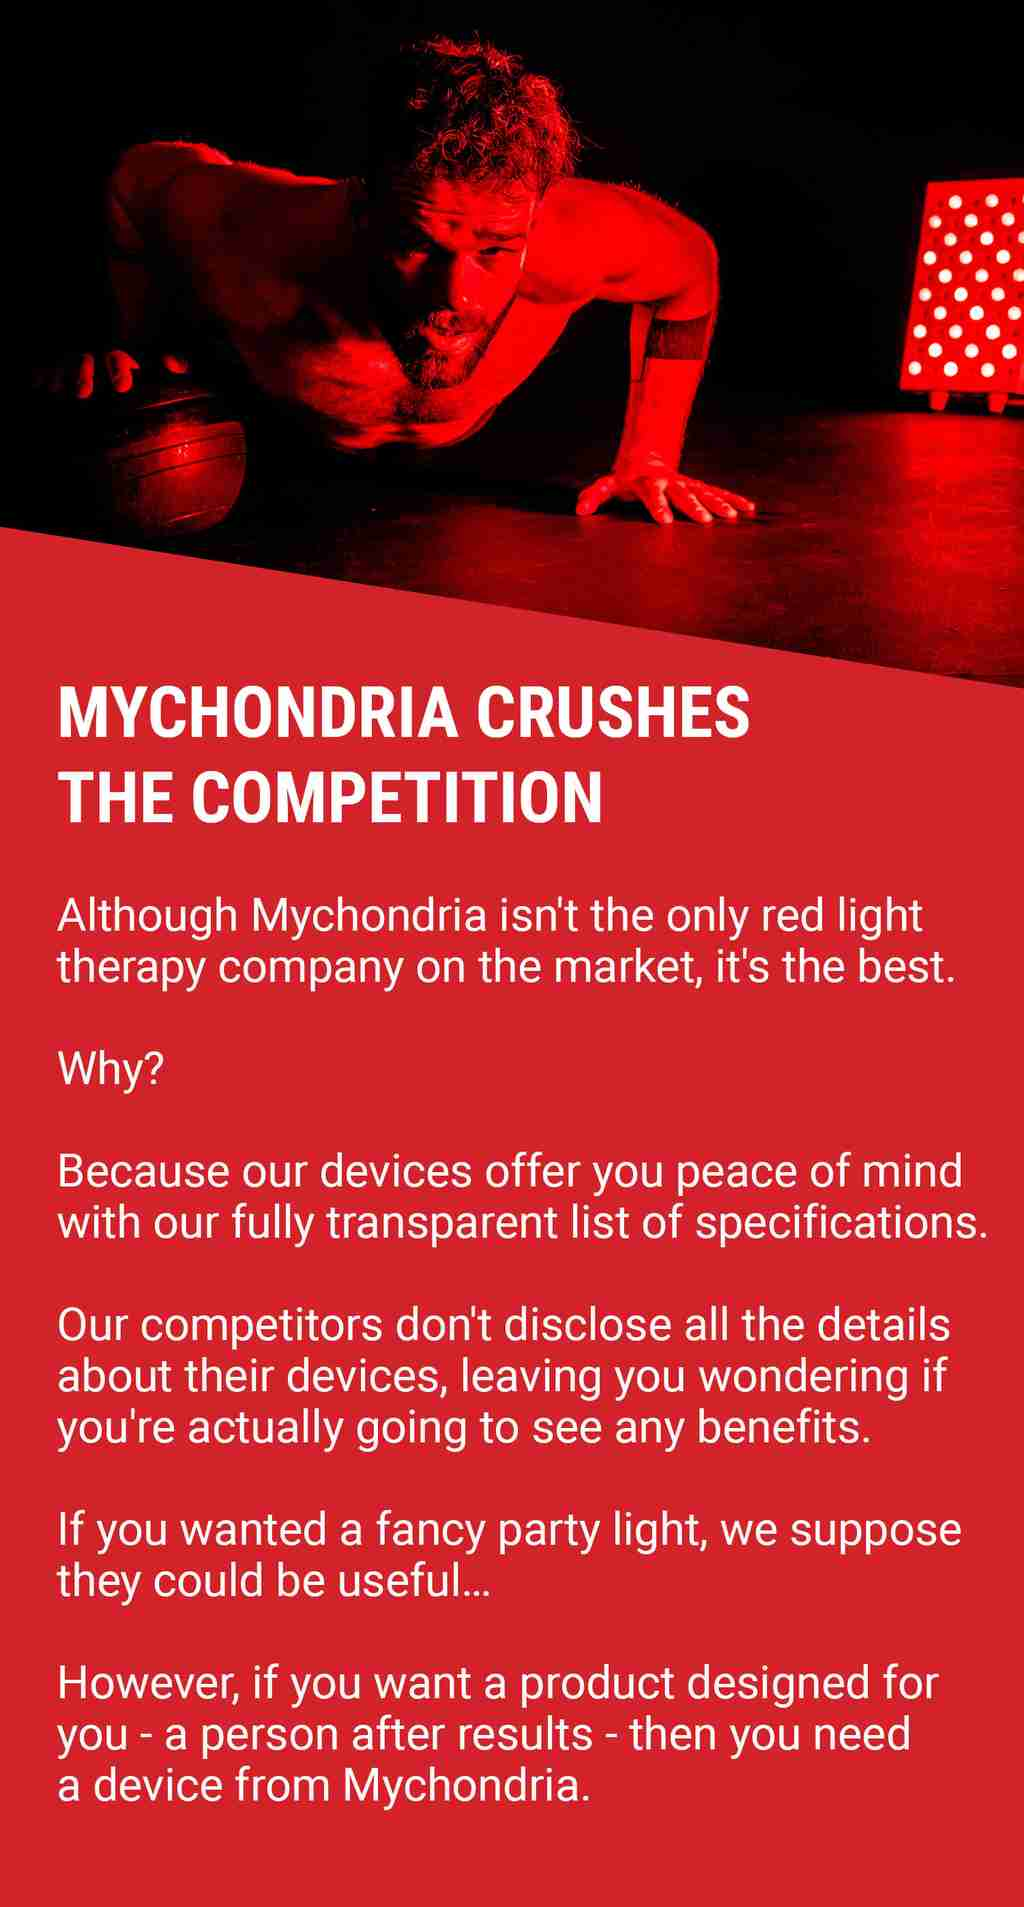 What makes Mychondria the best red light therapy company